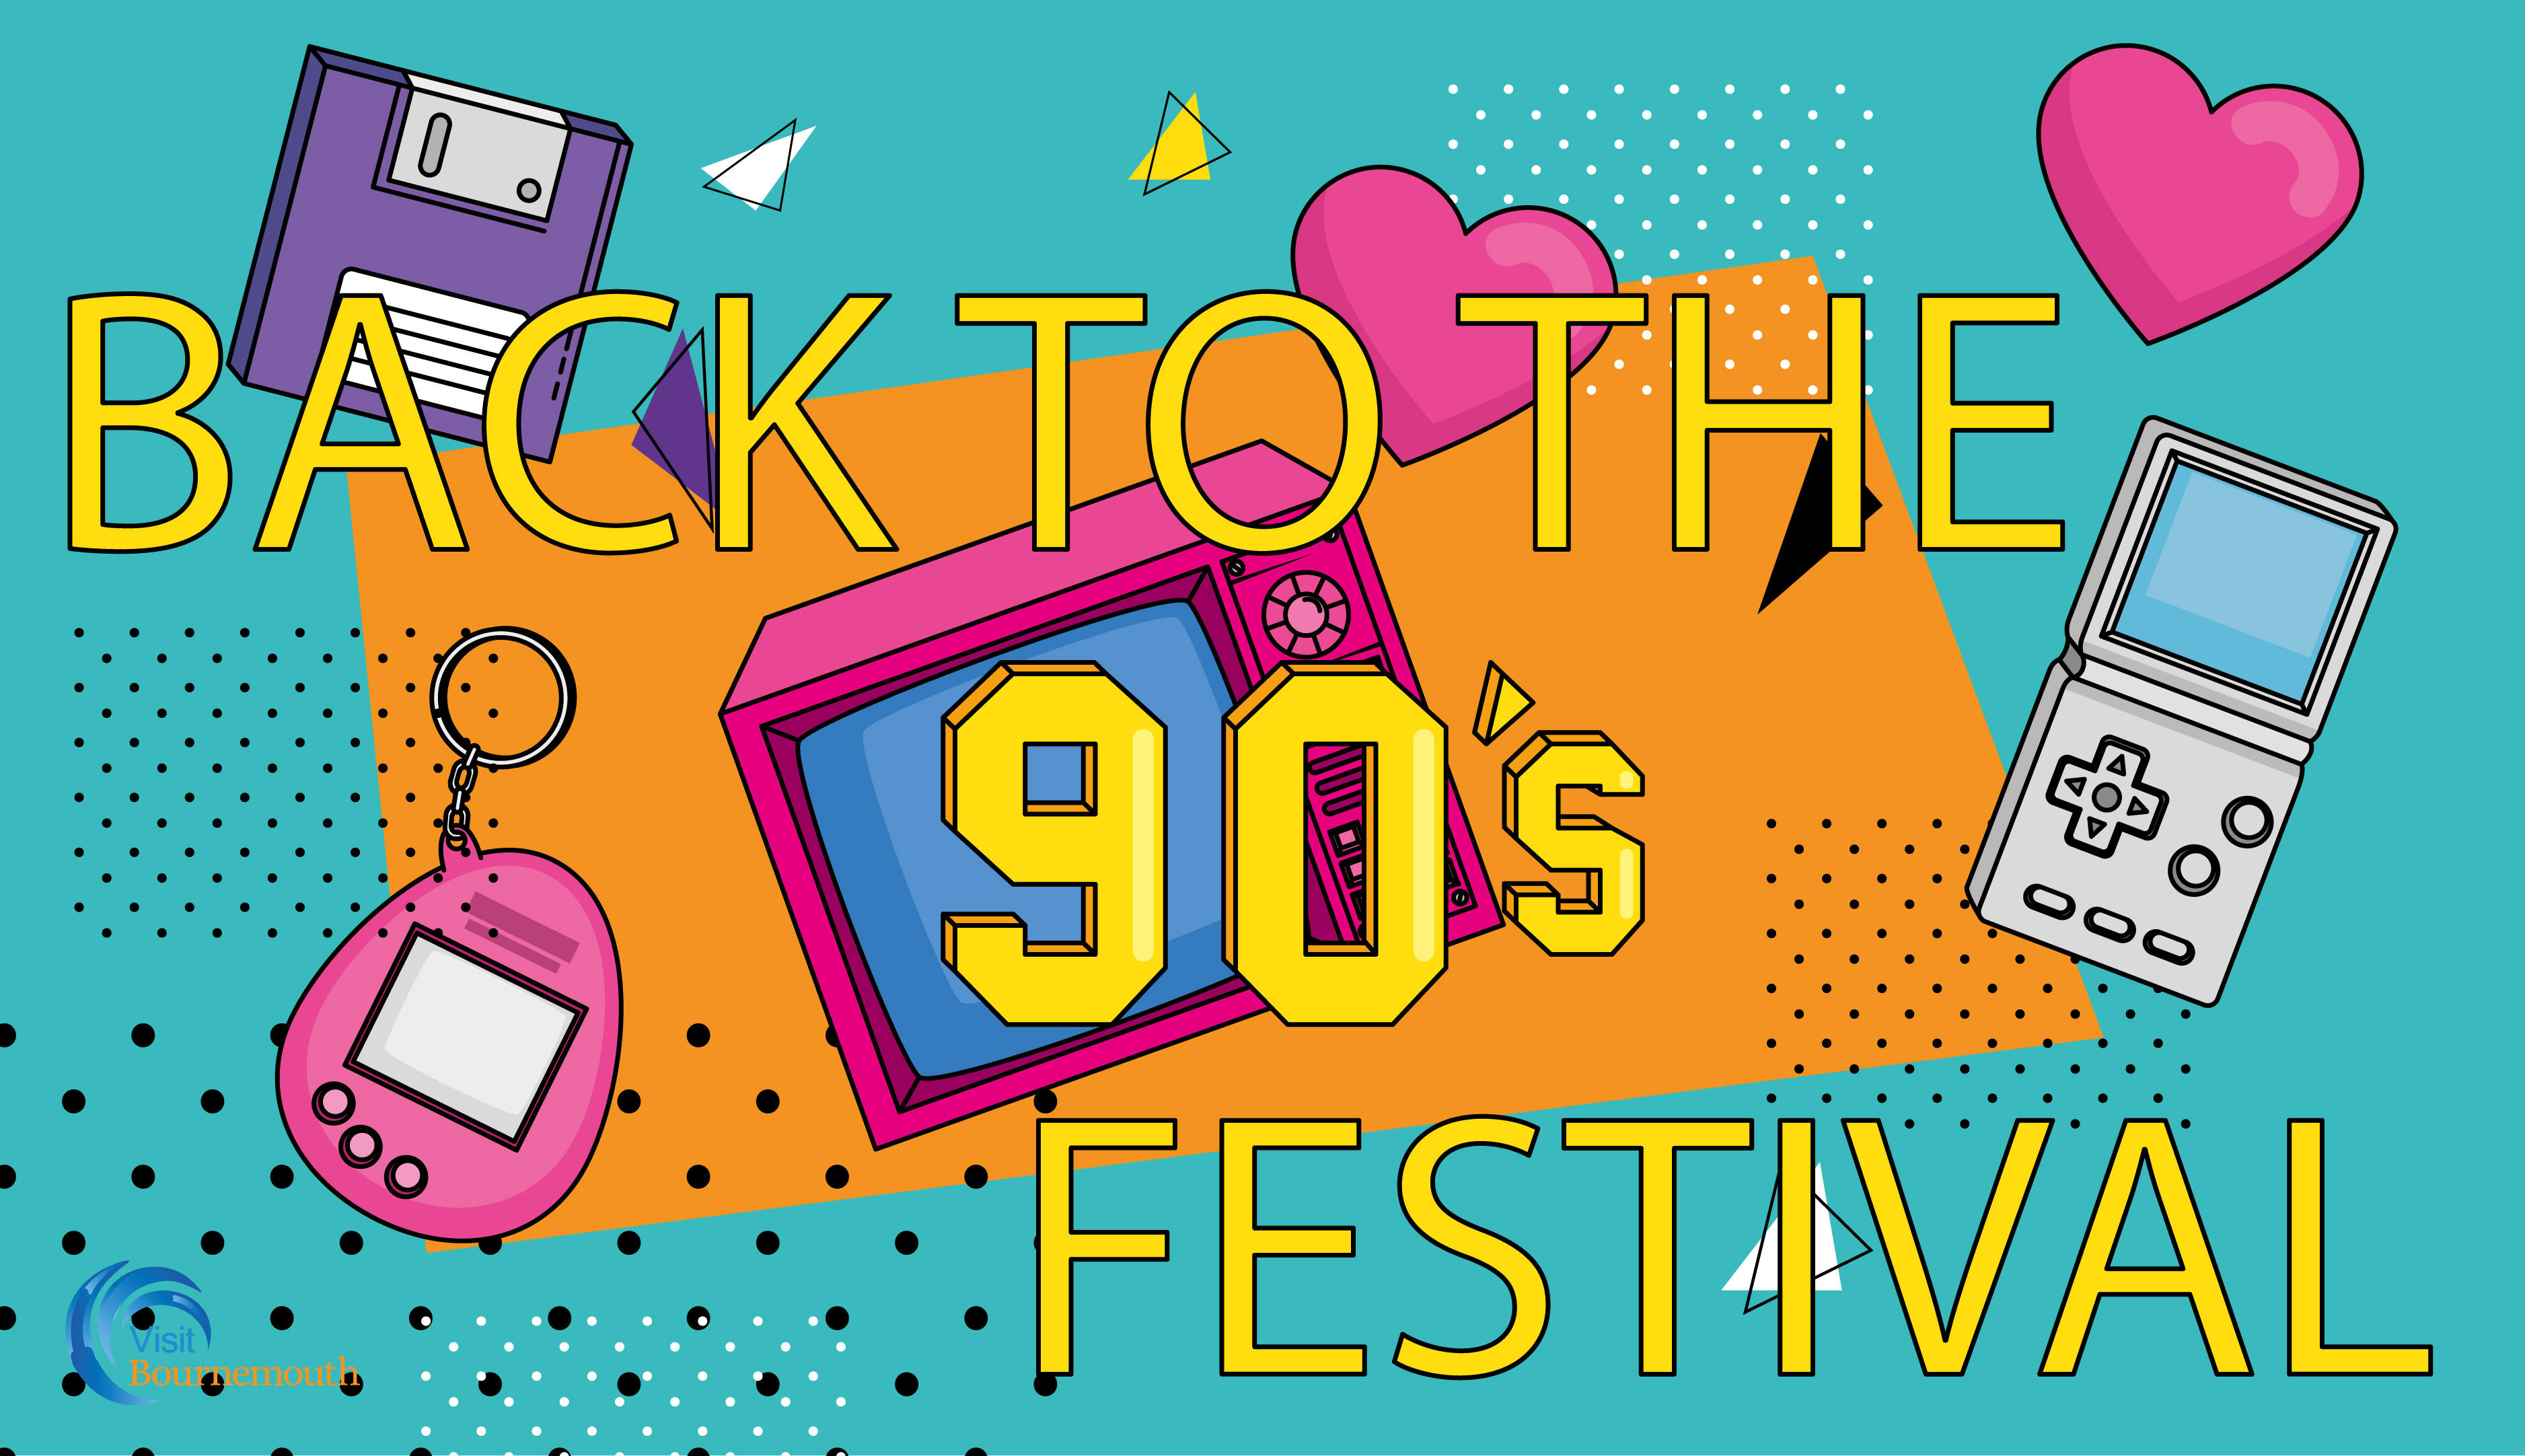 Back To the 90's Festival